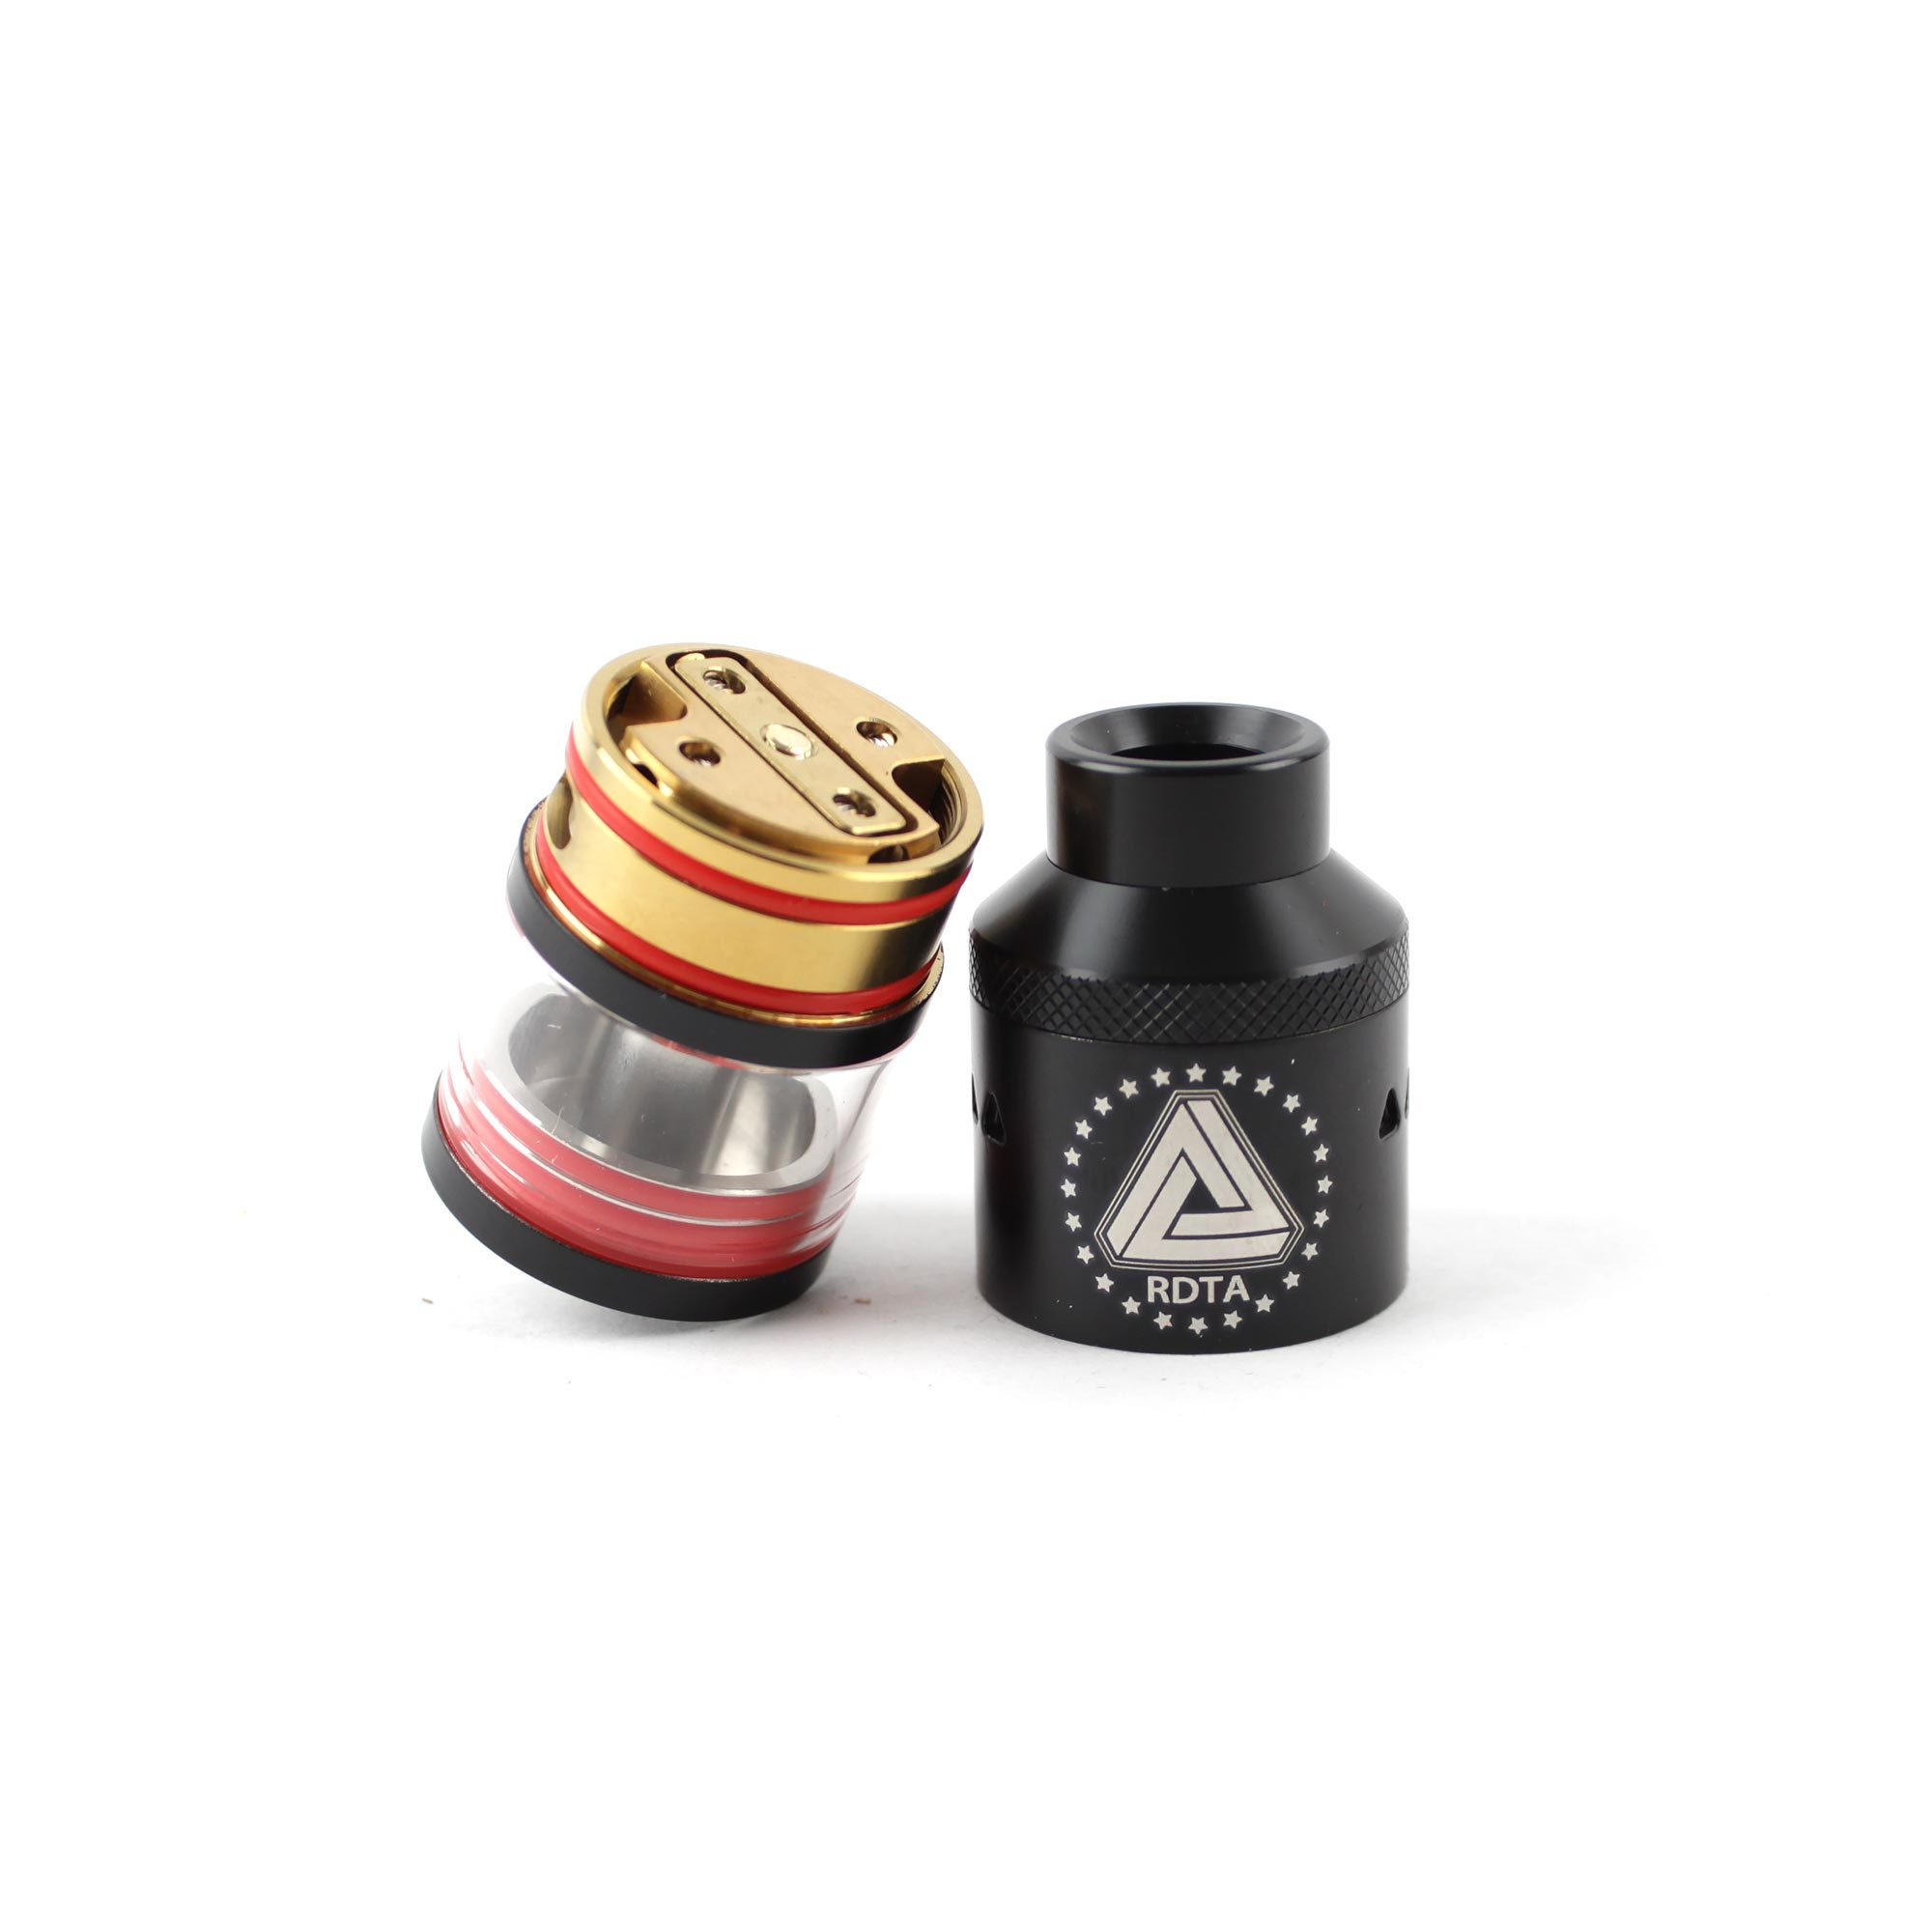 Дрипка New Limitless RDTA (Authentic) со снятым купол